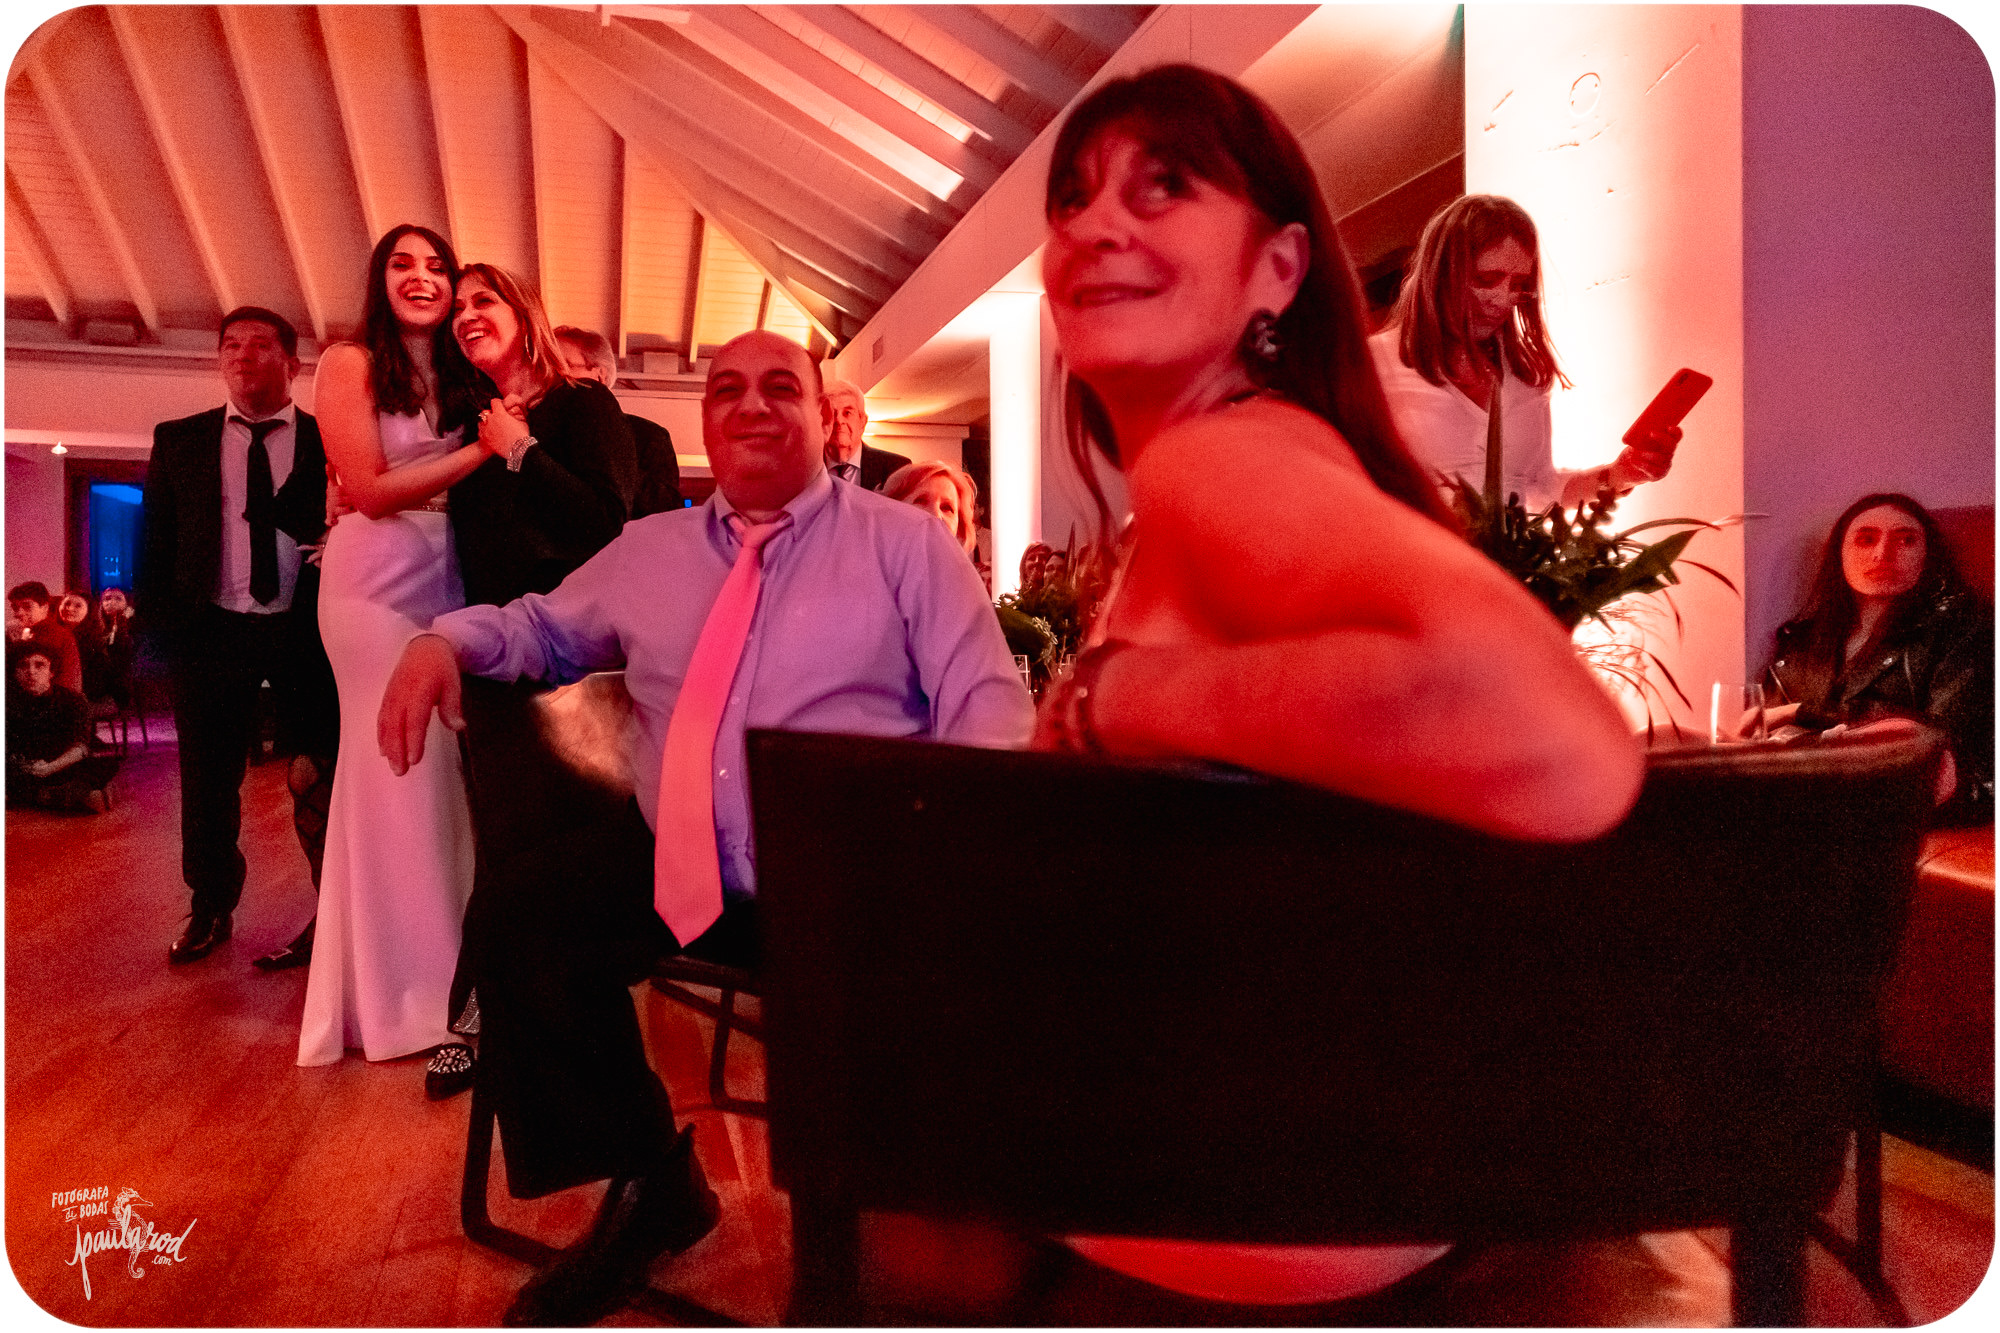 video_cronologico_para_eventos (3).jpg